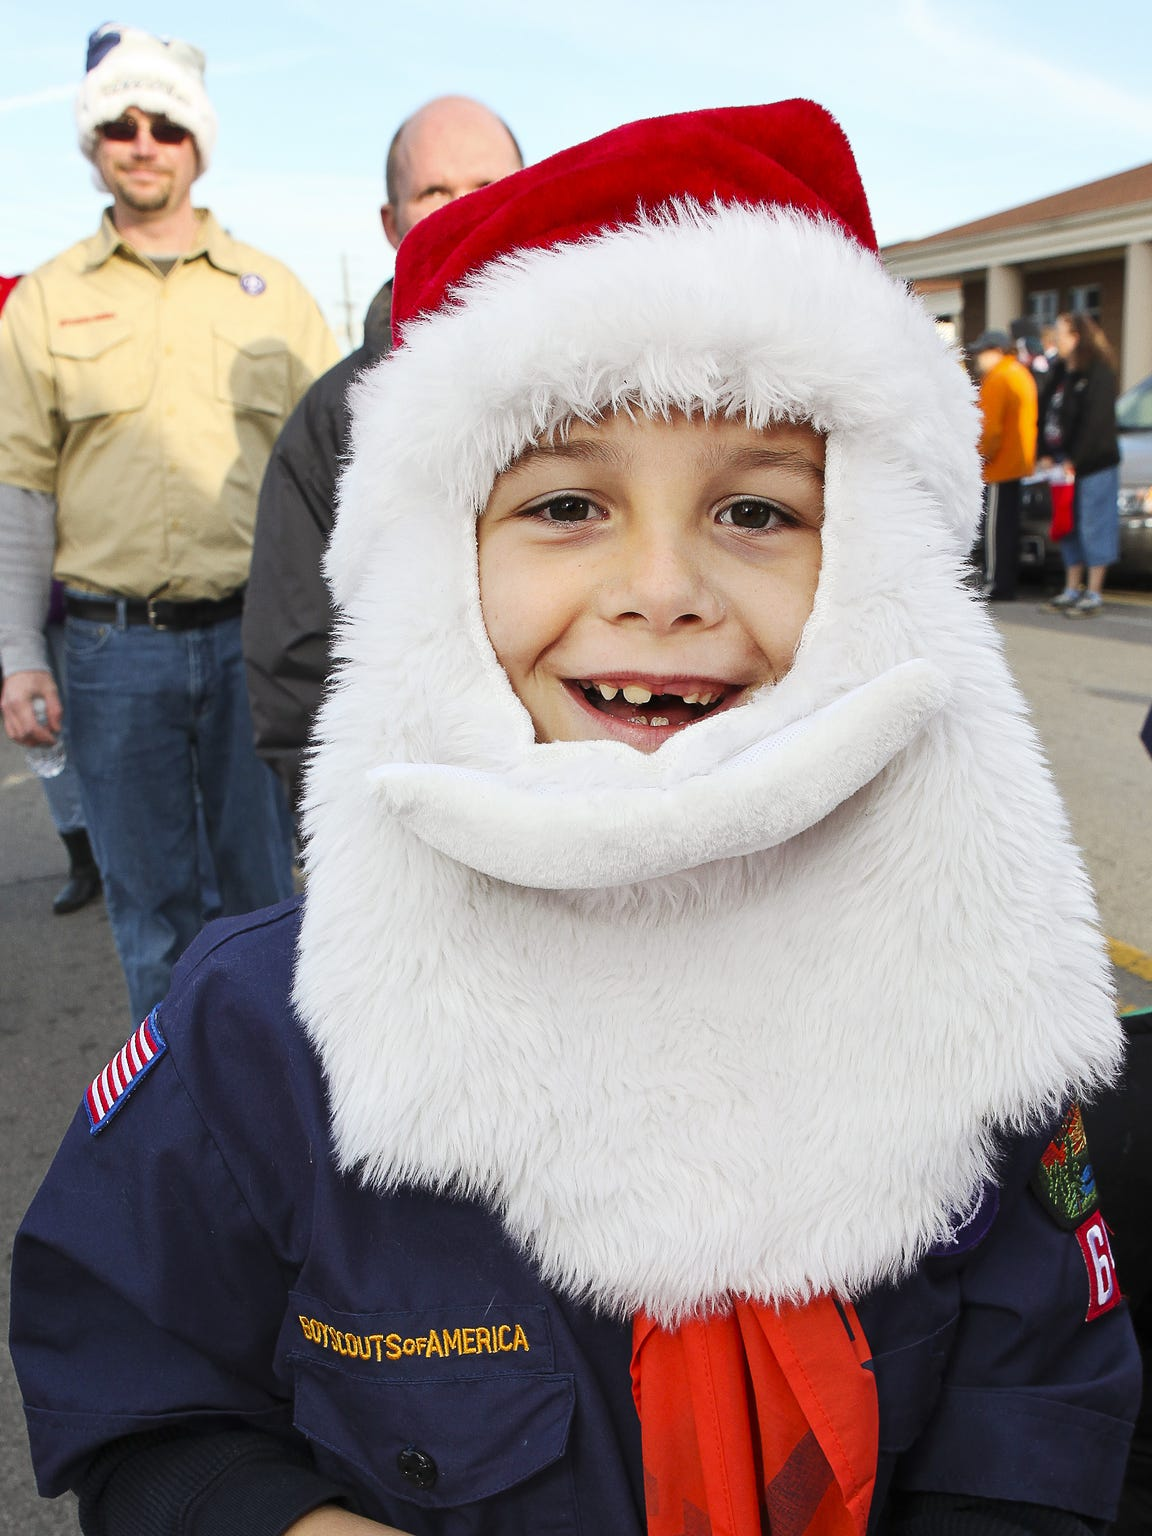 Ben Keener of La Vergne gets ready to join the parade route with his Cub Scout troop at last year's Parade of Lights in La Vergne.